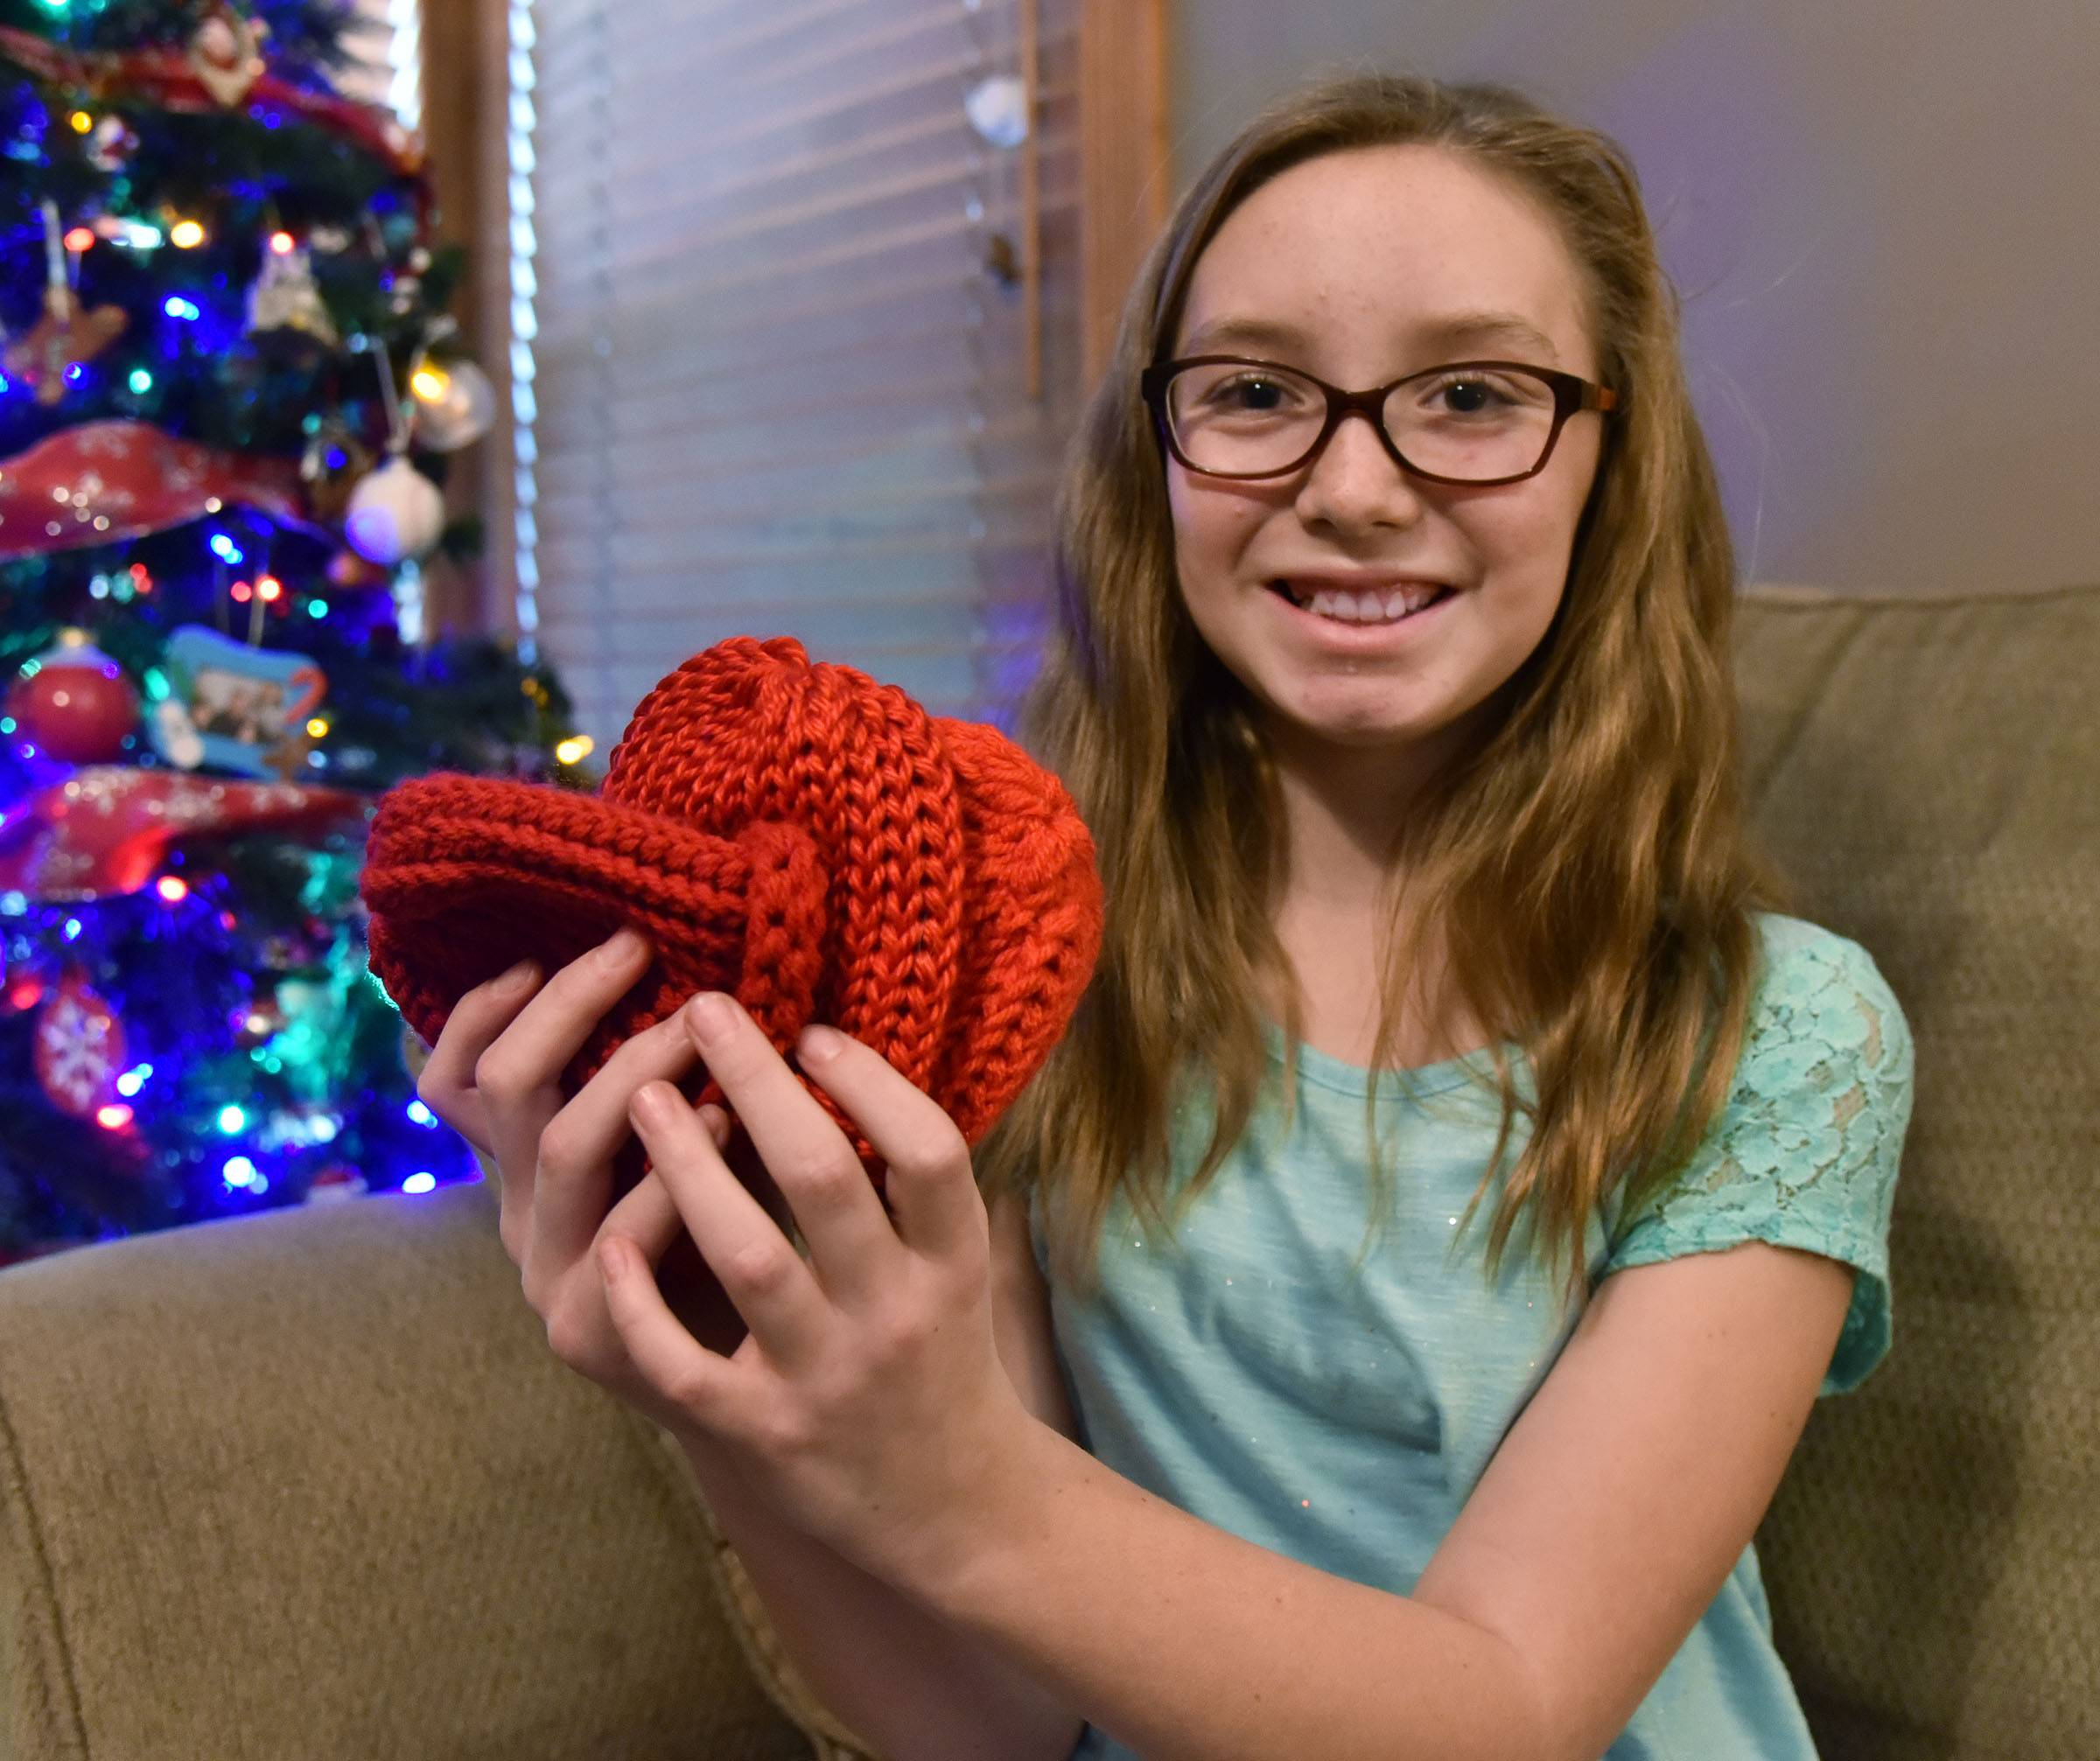 Emily Cavallini, 10, is using a loom to make tiny red hats in her South Elgin home for babies born during American Heart Month.